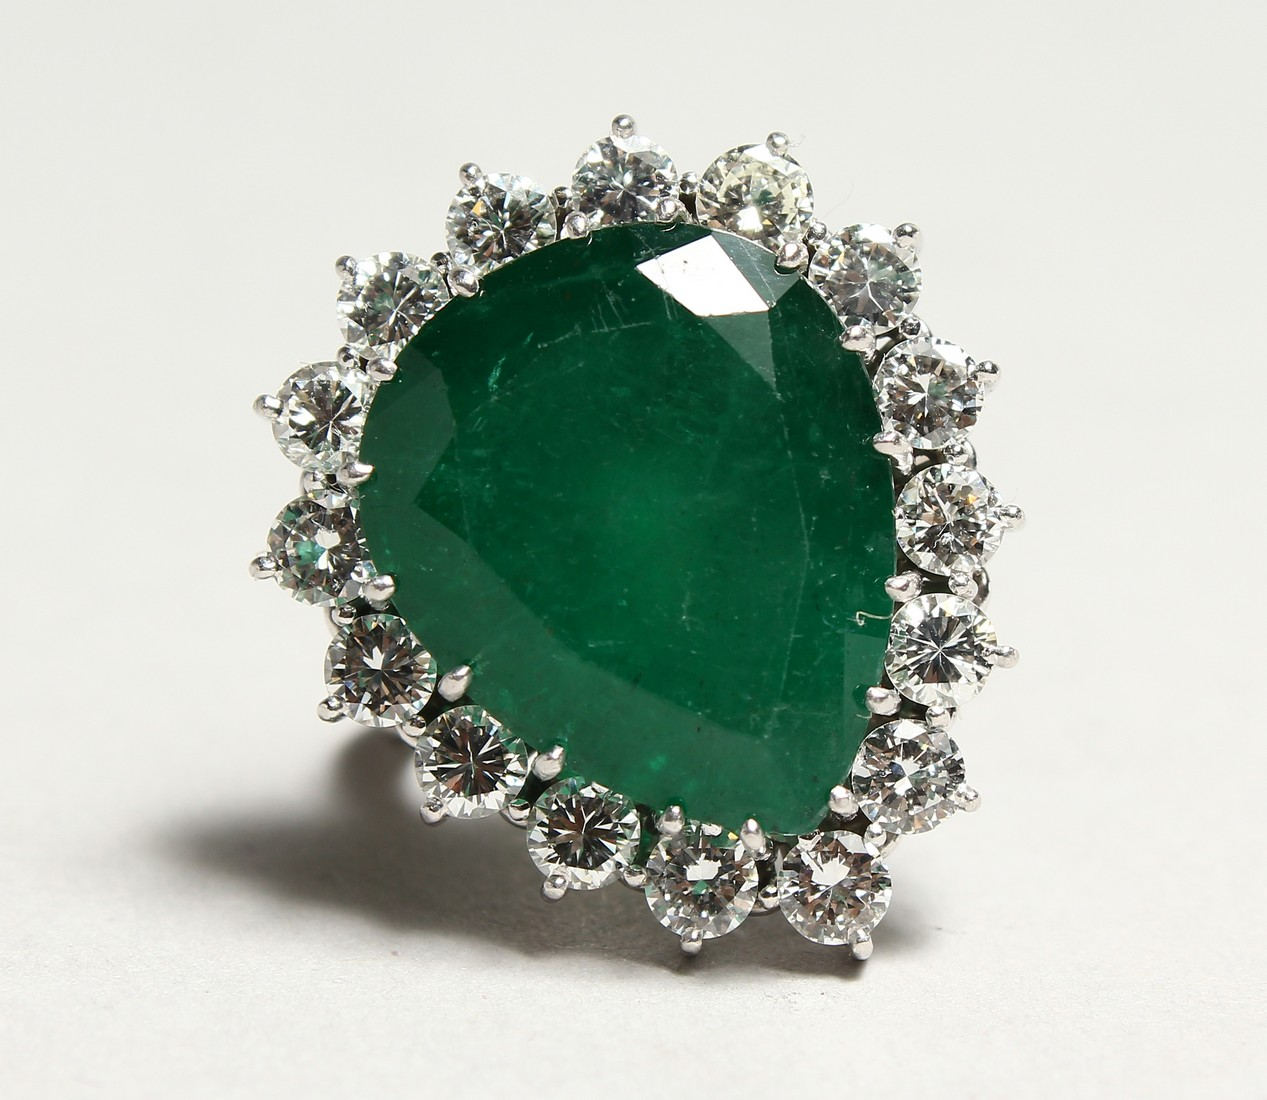 A SUPERB 18CT WHITE GOLD TIER DROP EMERALD AND DIAMOND RING set with a large emerald surrounded by